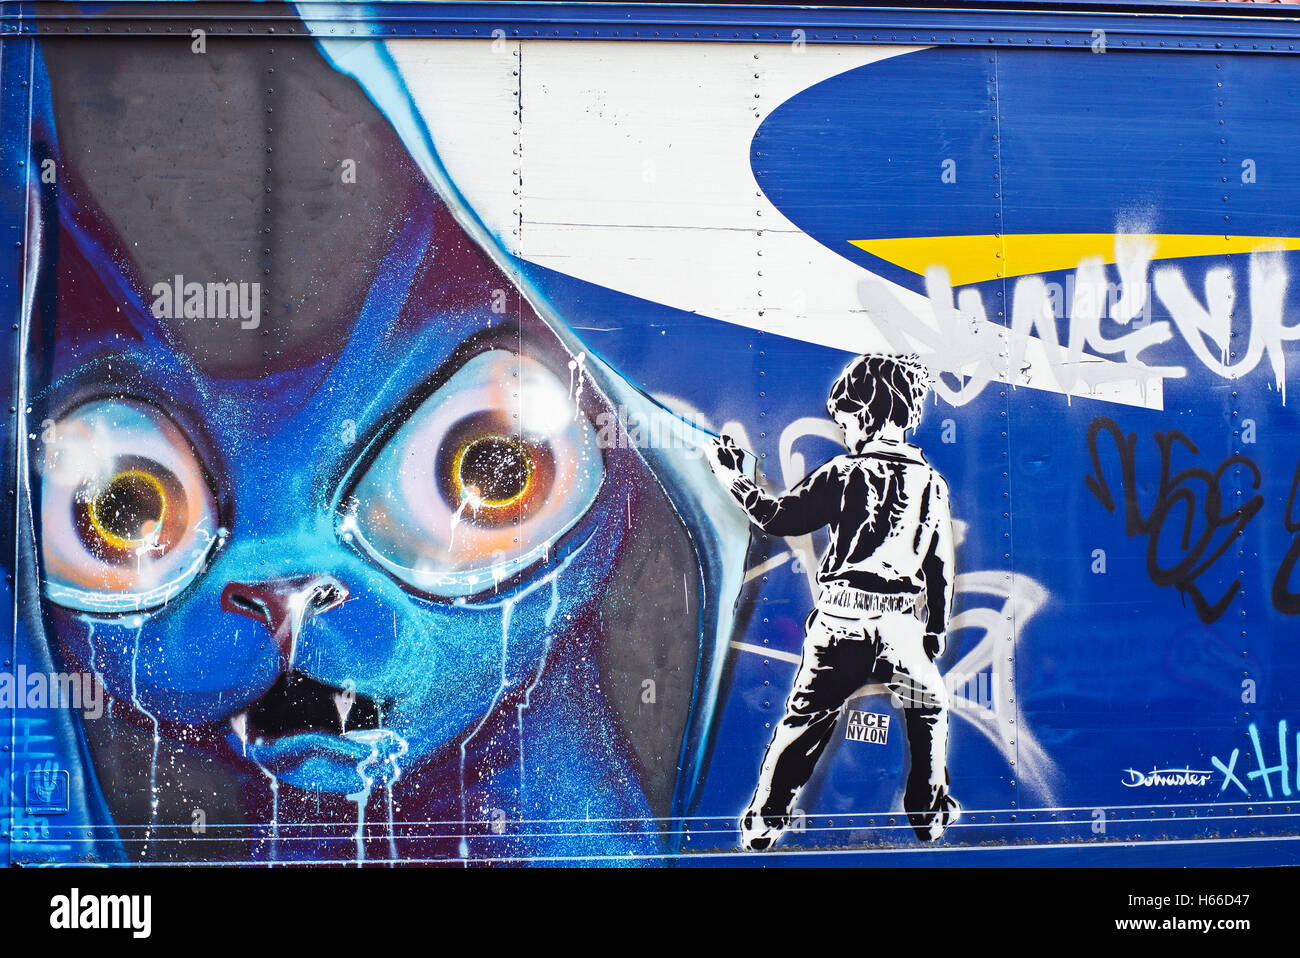 Graffiti on a goods Van, blue cat behind curtain child pulls curtain back in a reveal - Stock Image